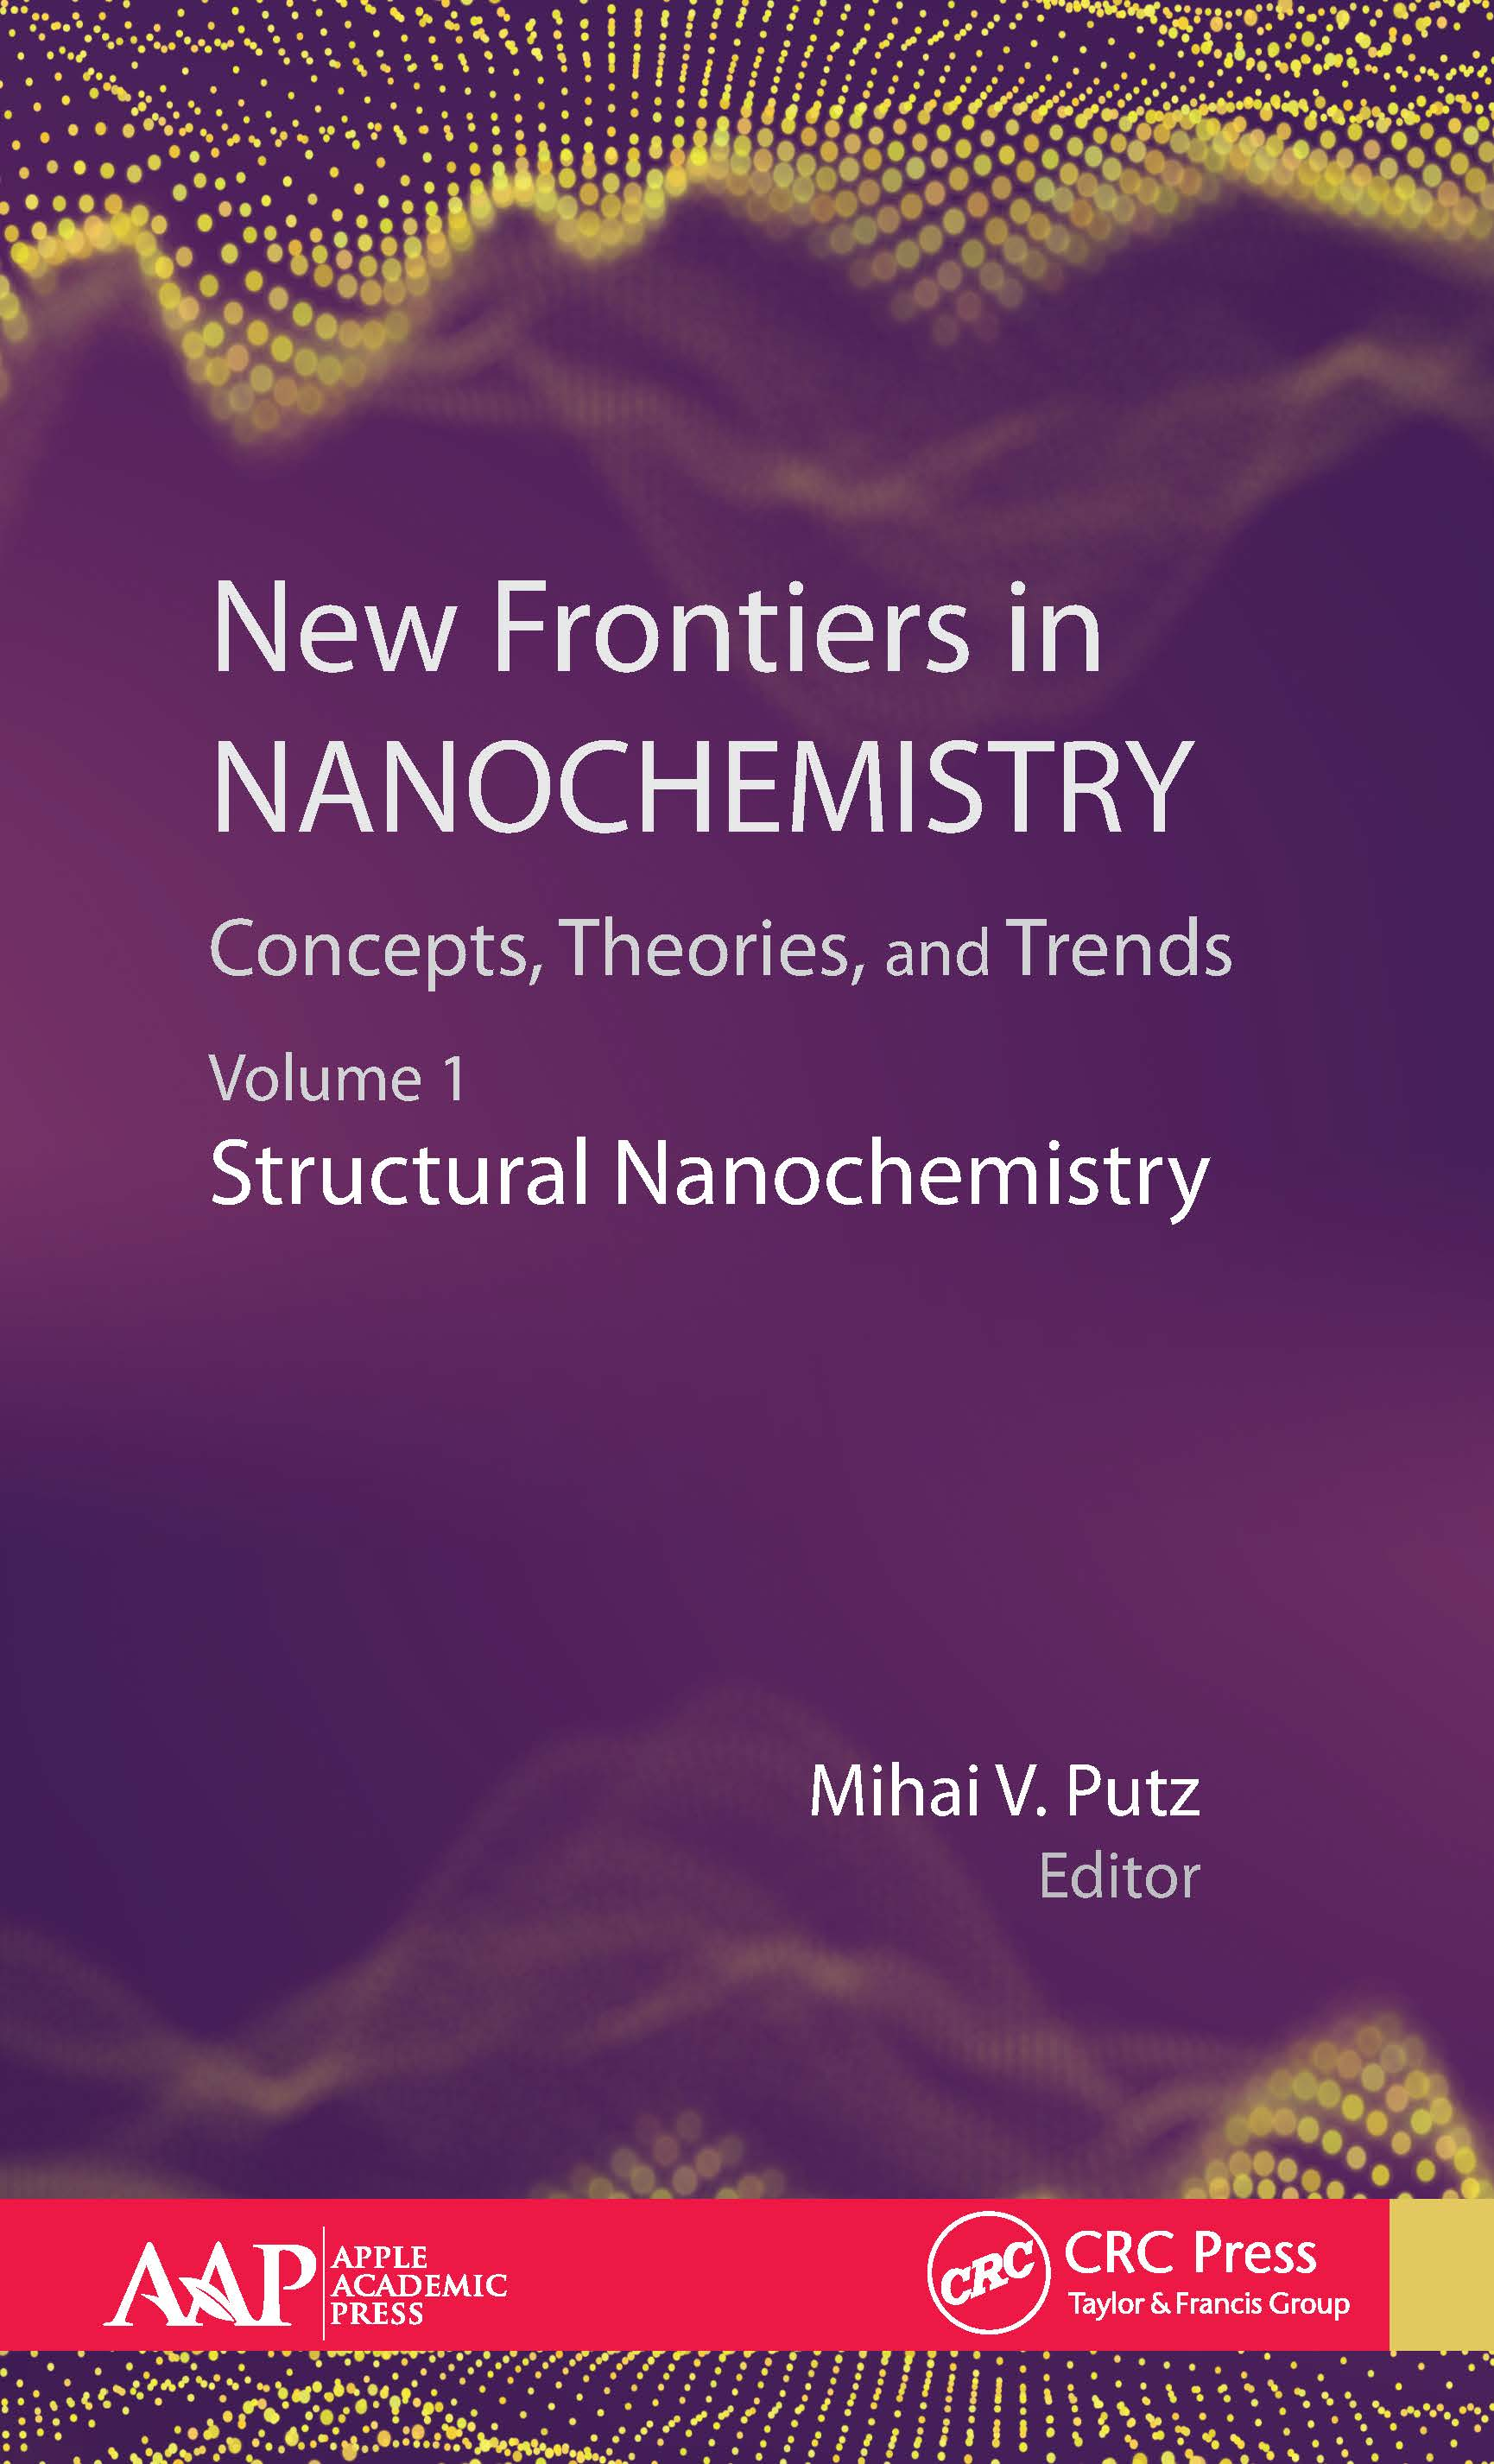 New Frontiers in Nanochemistry: Concepts, Theories, and Trends: Volume 1: Structural Nanochemistry book cover